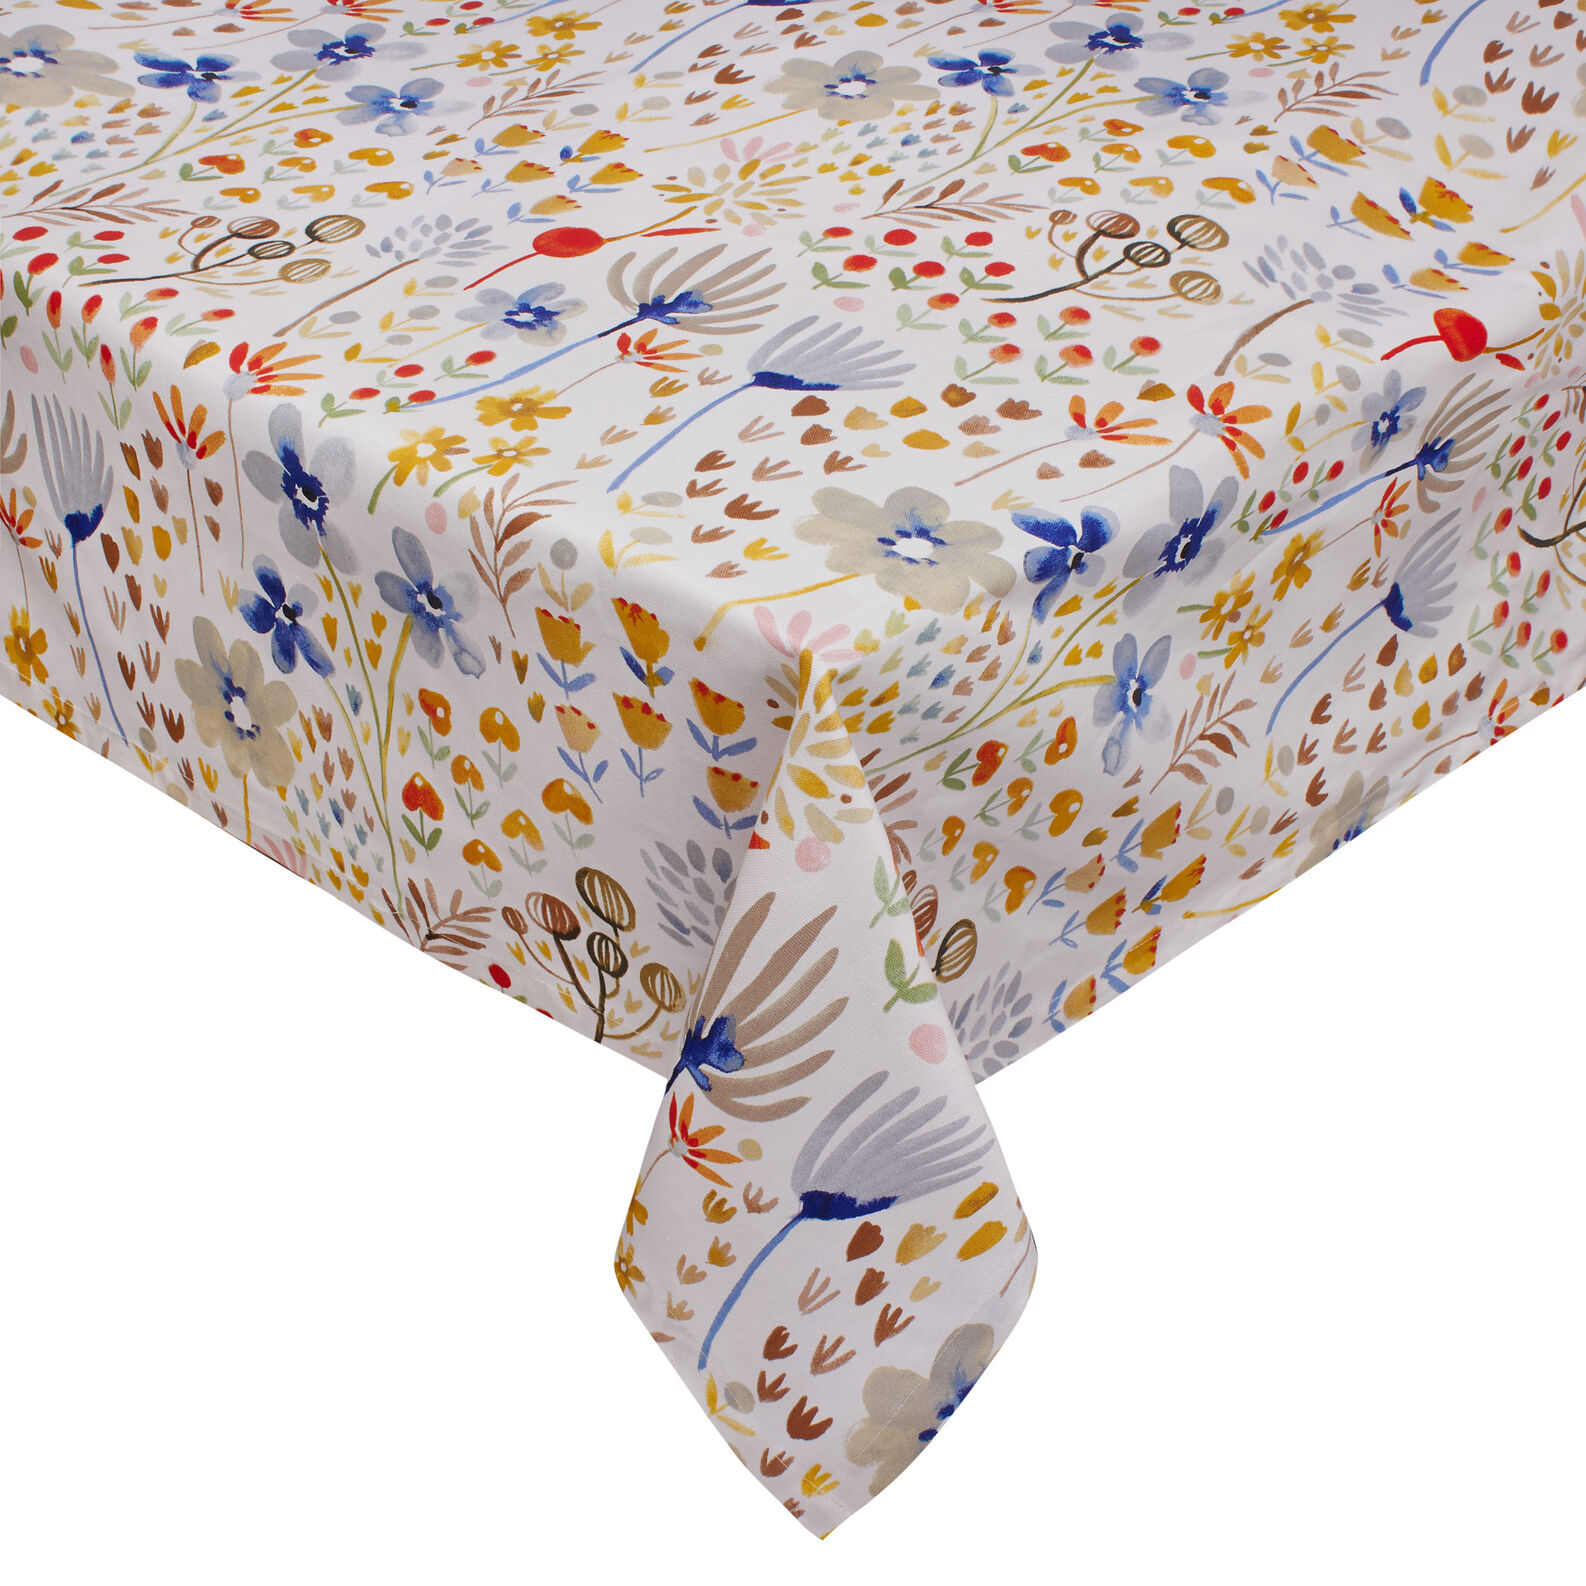 Naif tablecloth in 100% cotton